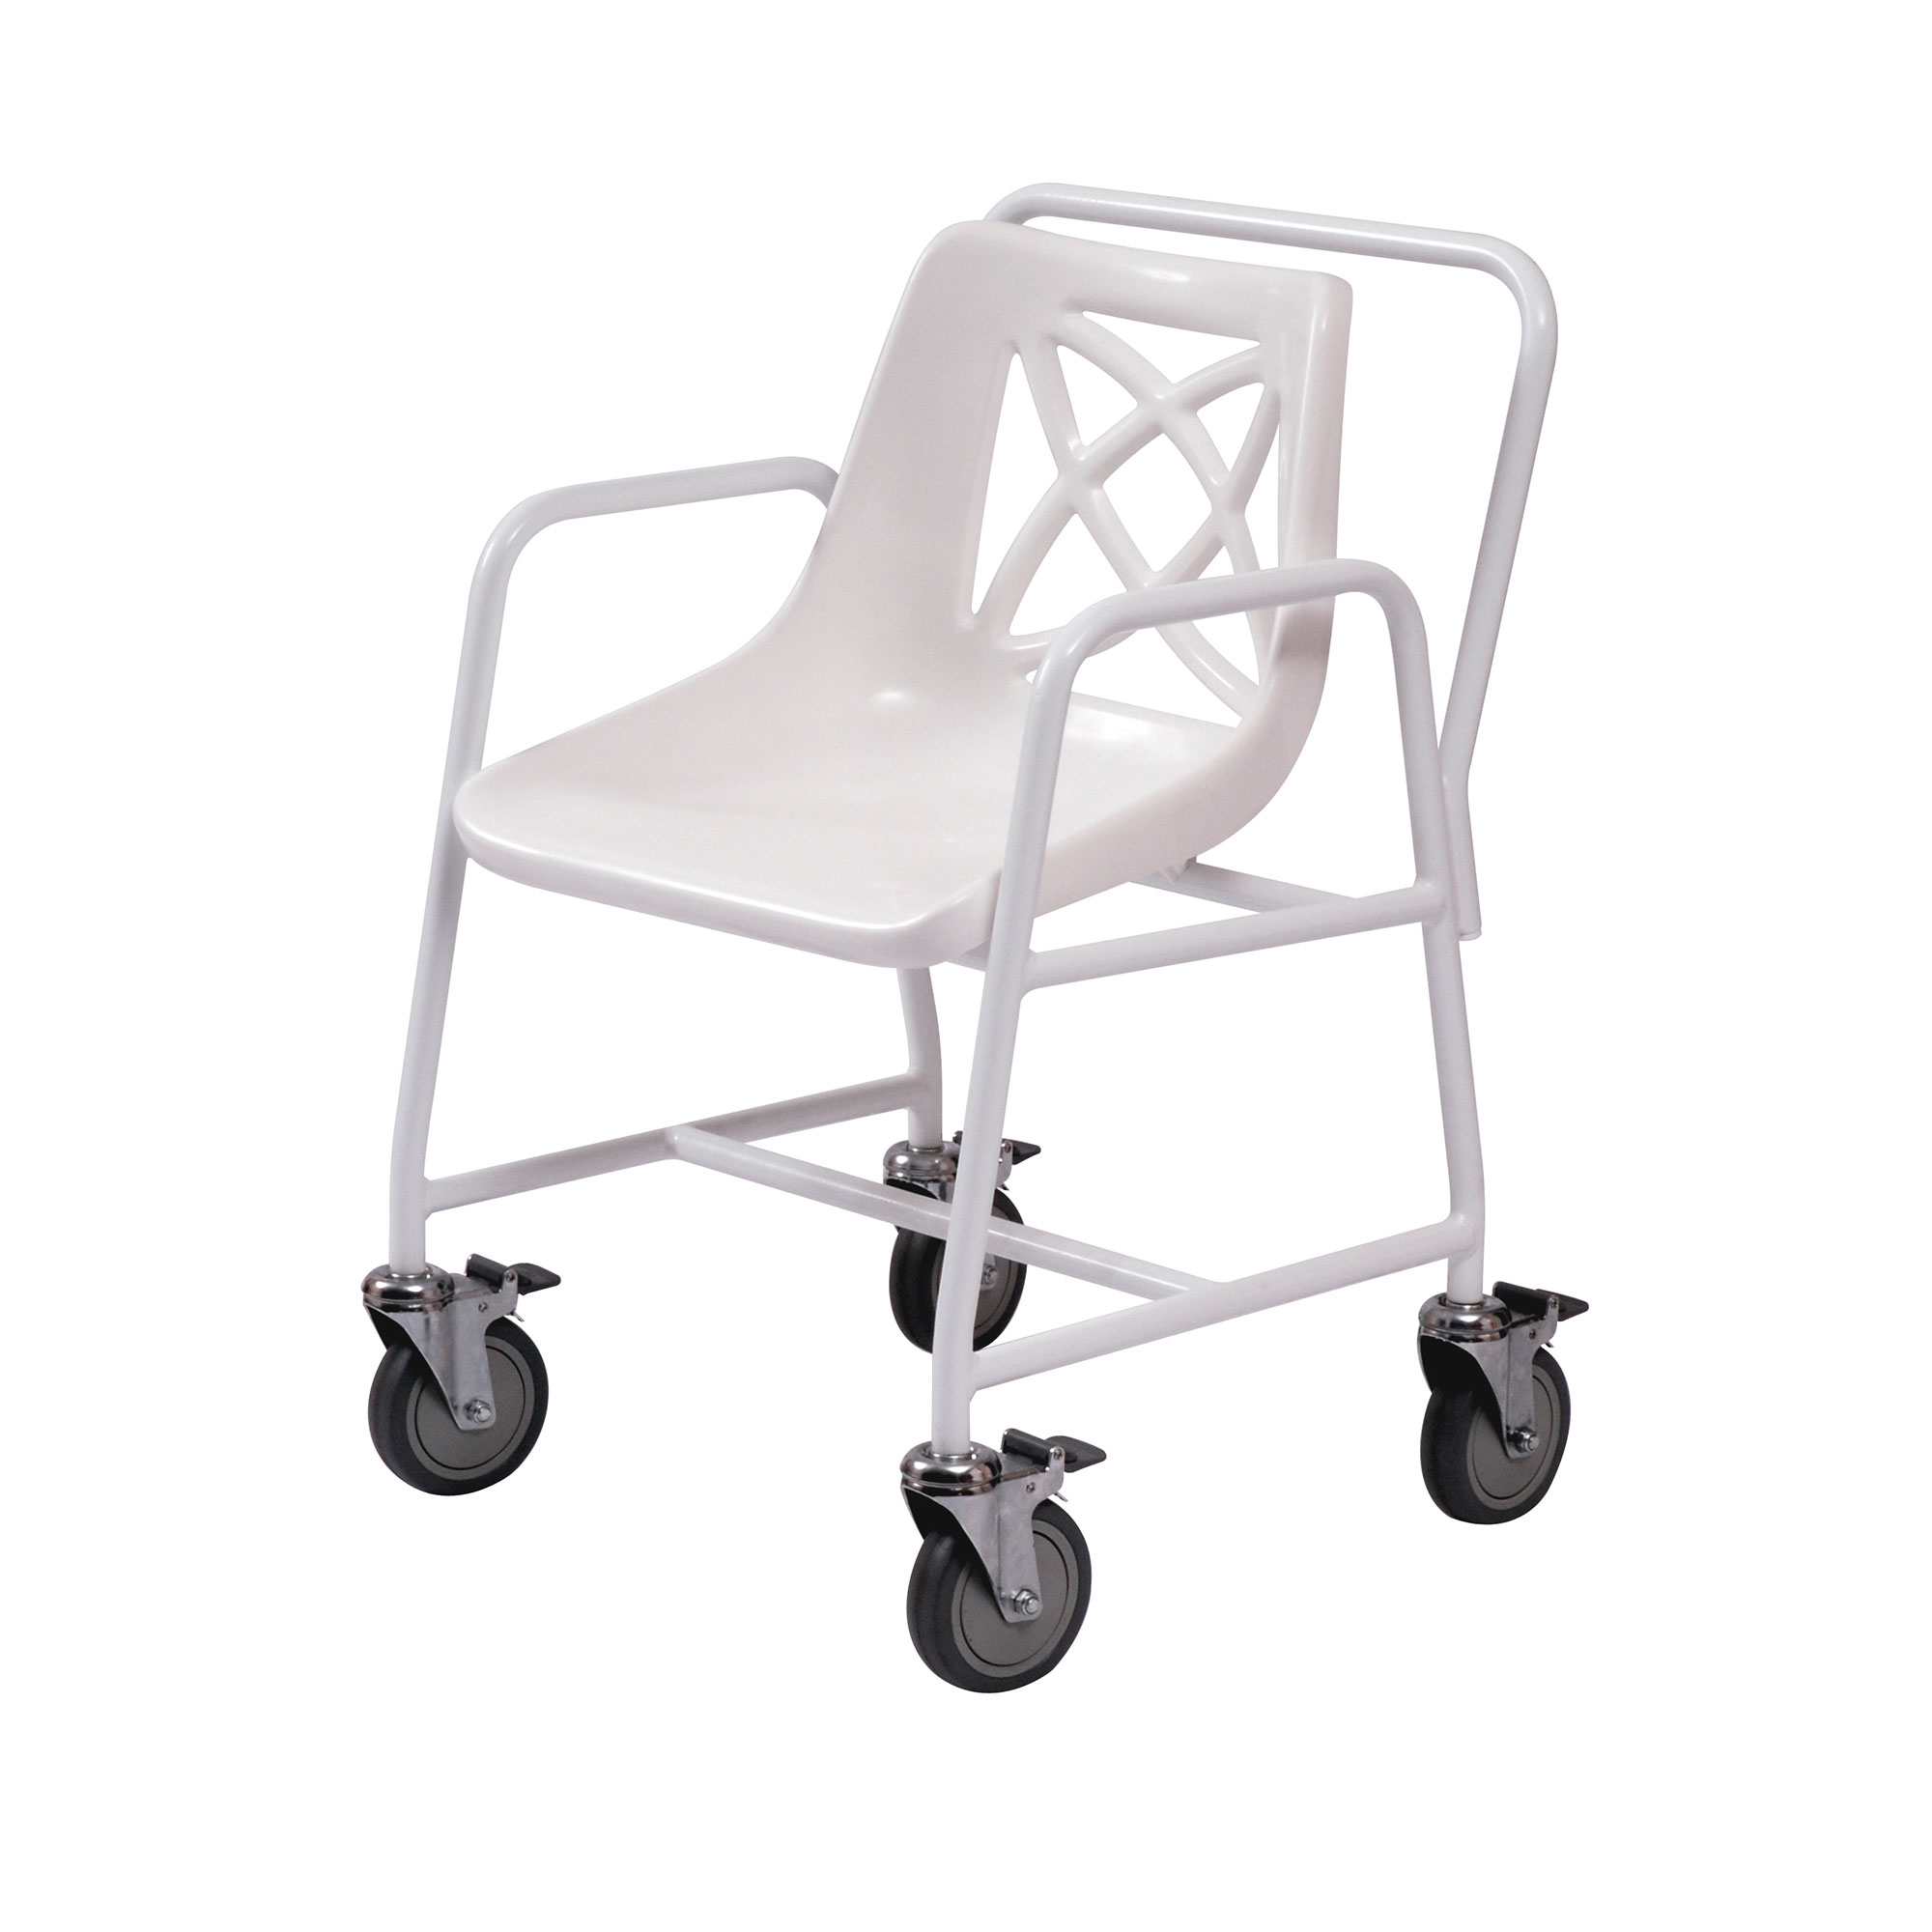 Roma Medical Wheeled Mobile Shower Chair at low prices UK